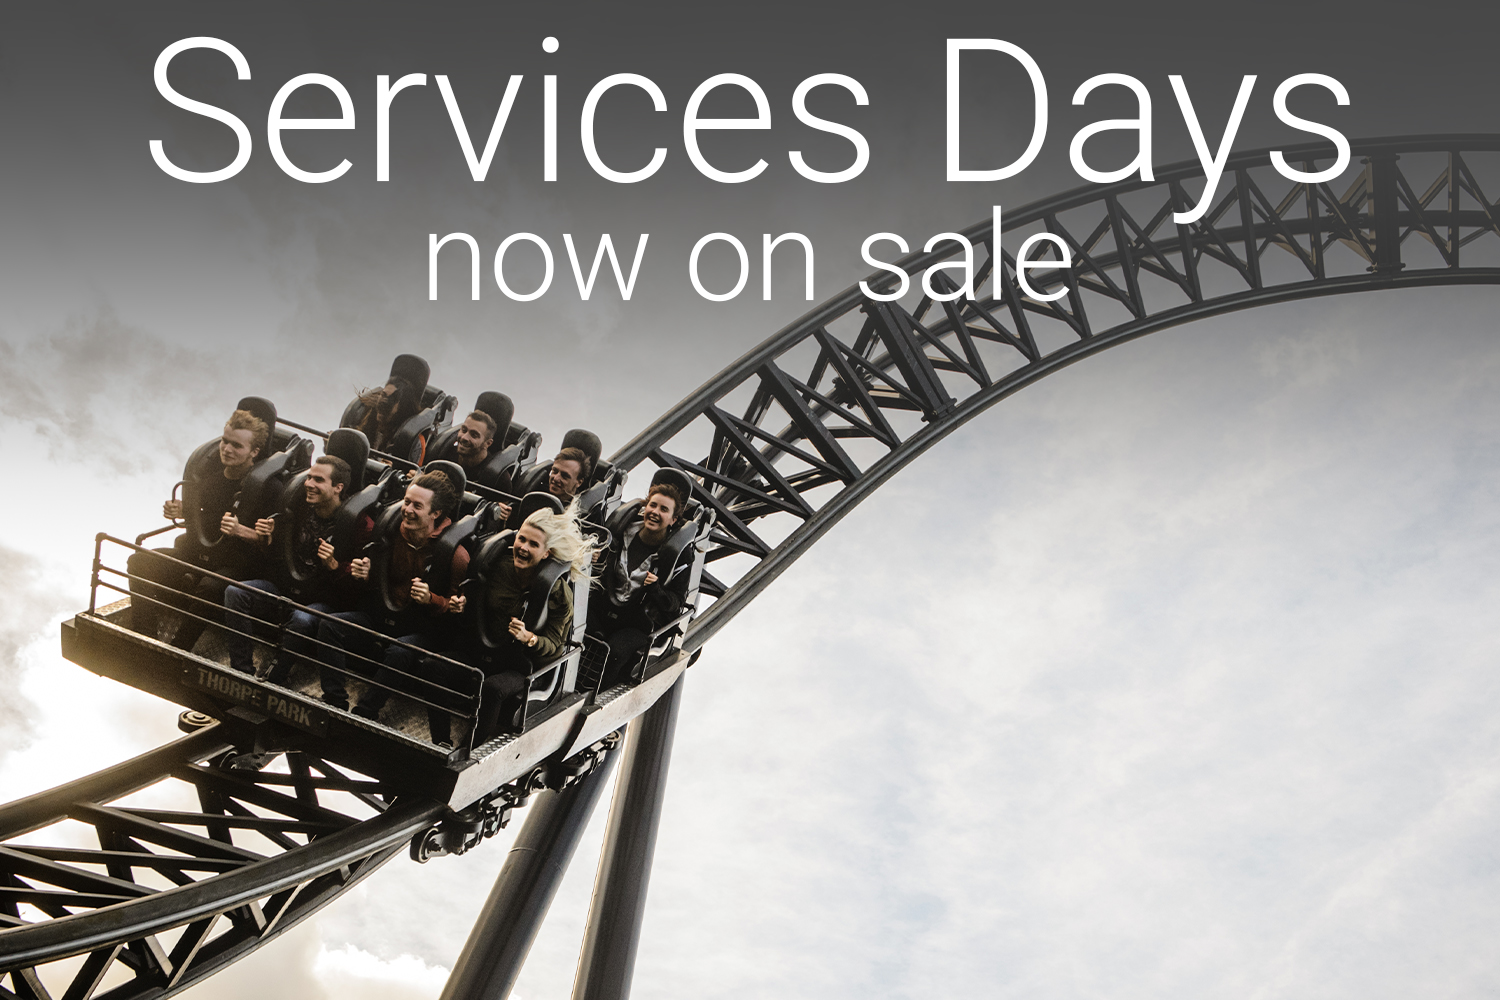 Services Days 2021 - now on sale!